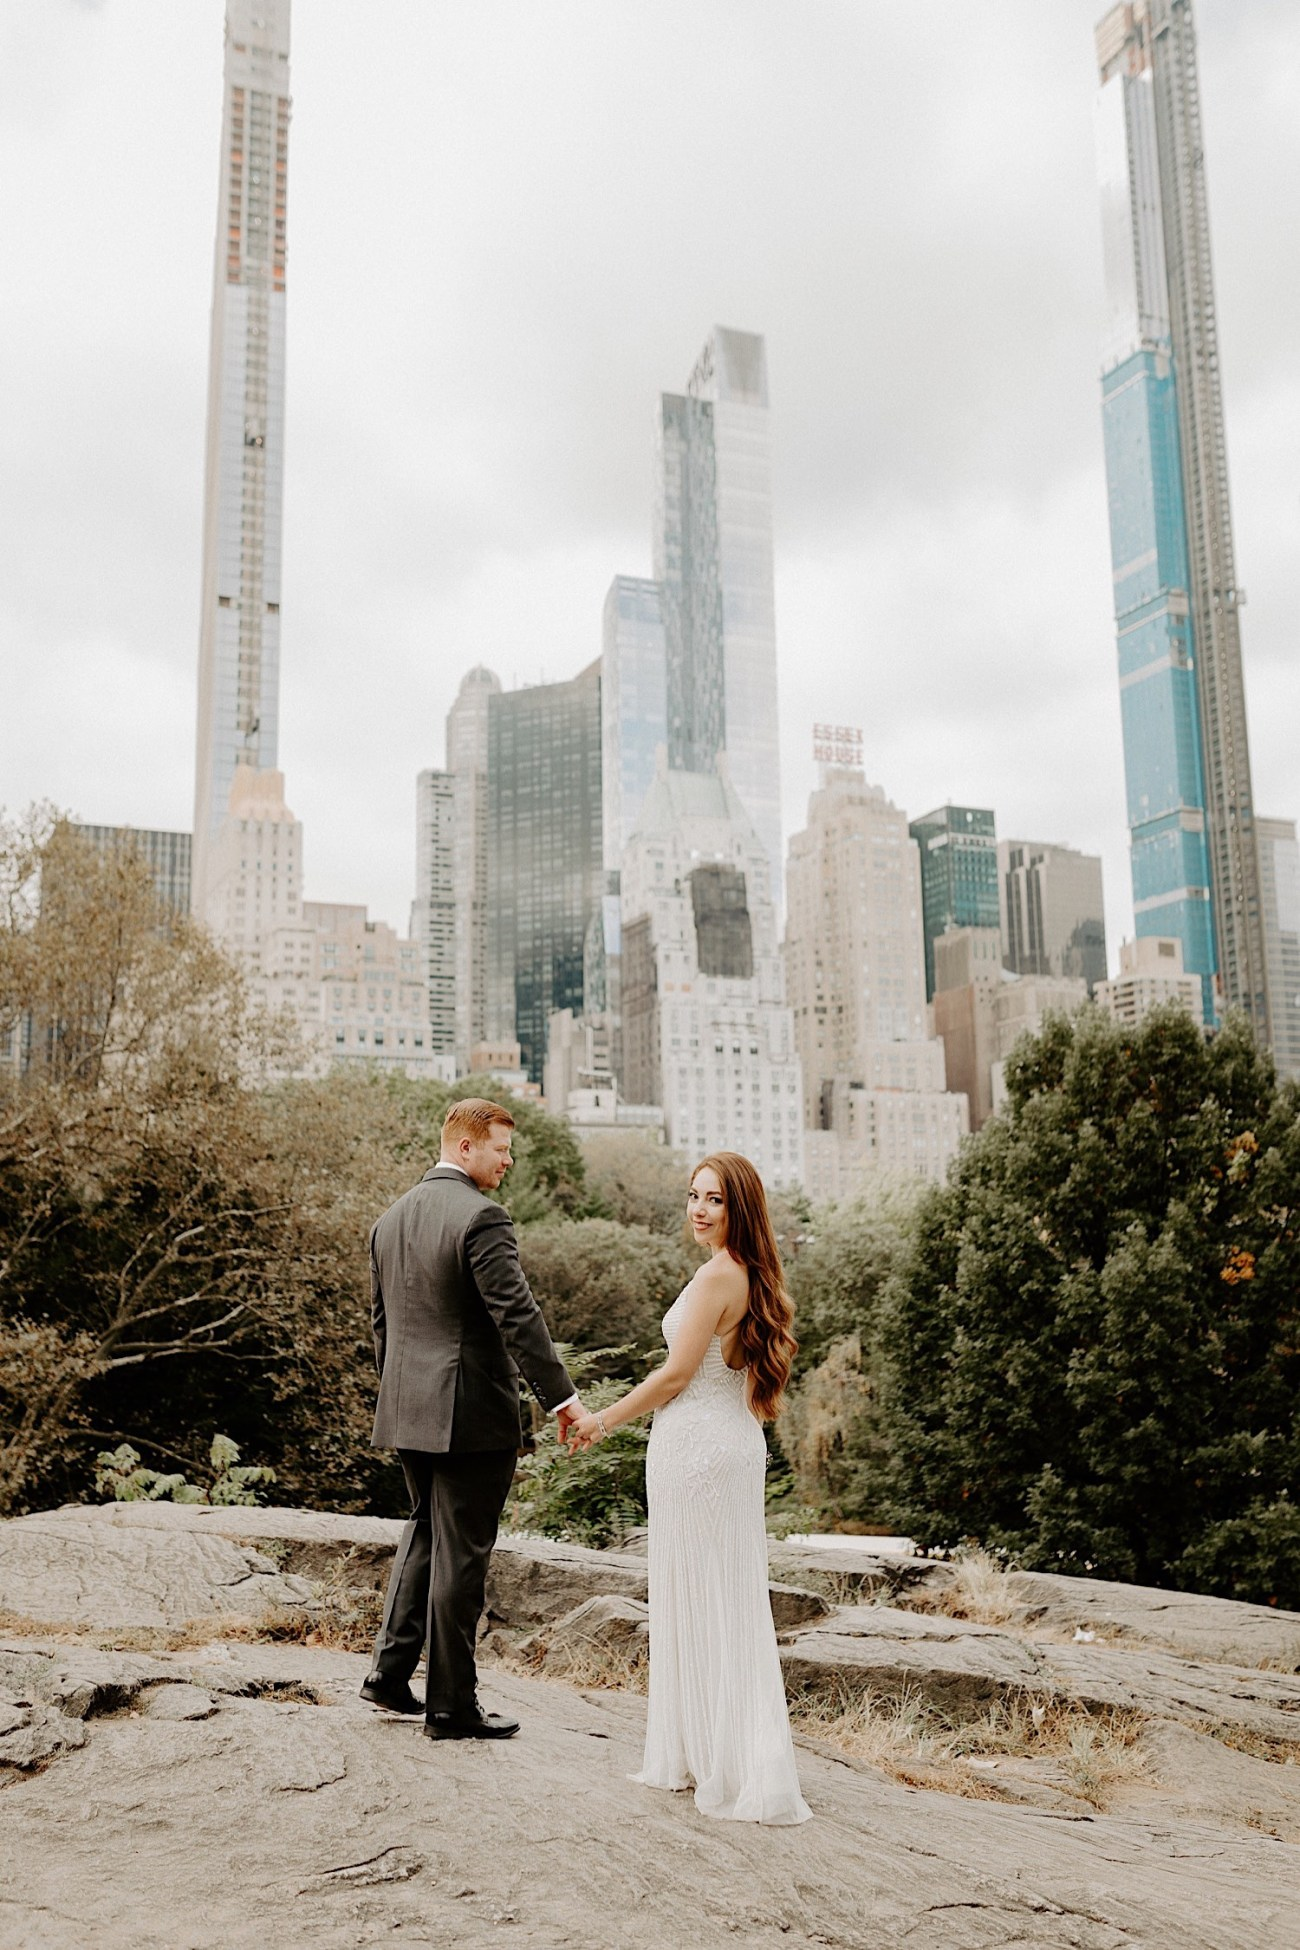 Central Park Wedding Photos Central Park Elopement NYC Wedding Photographer 11